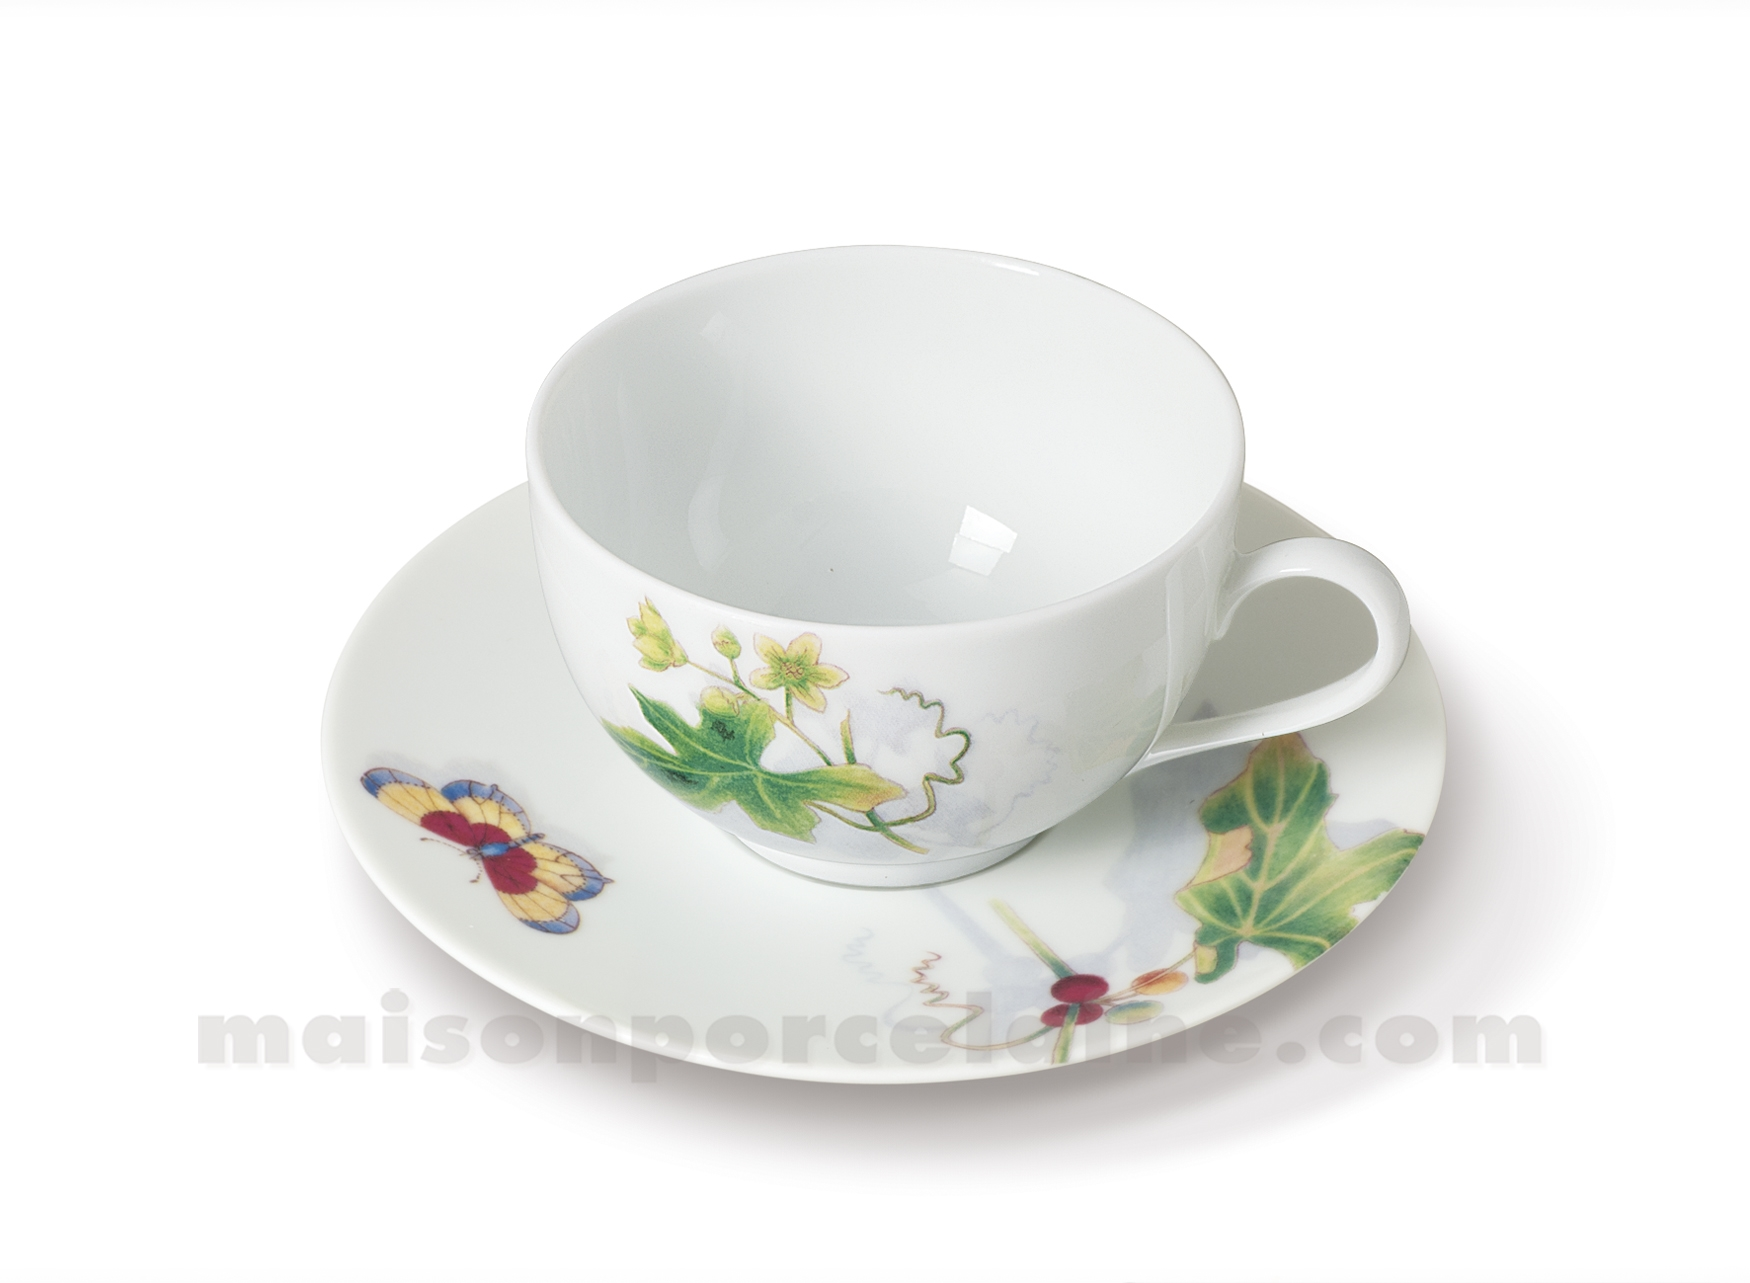 Tasse cafe soucoupe limoges envie 14cl maison de la for Maison de la porcelaine